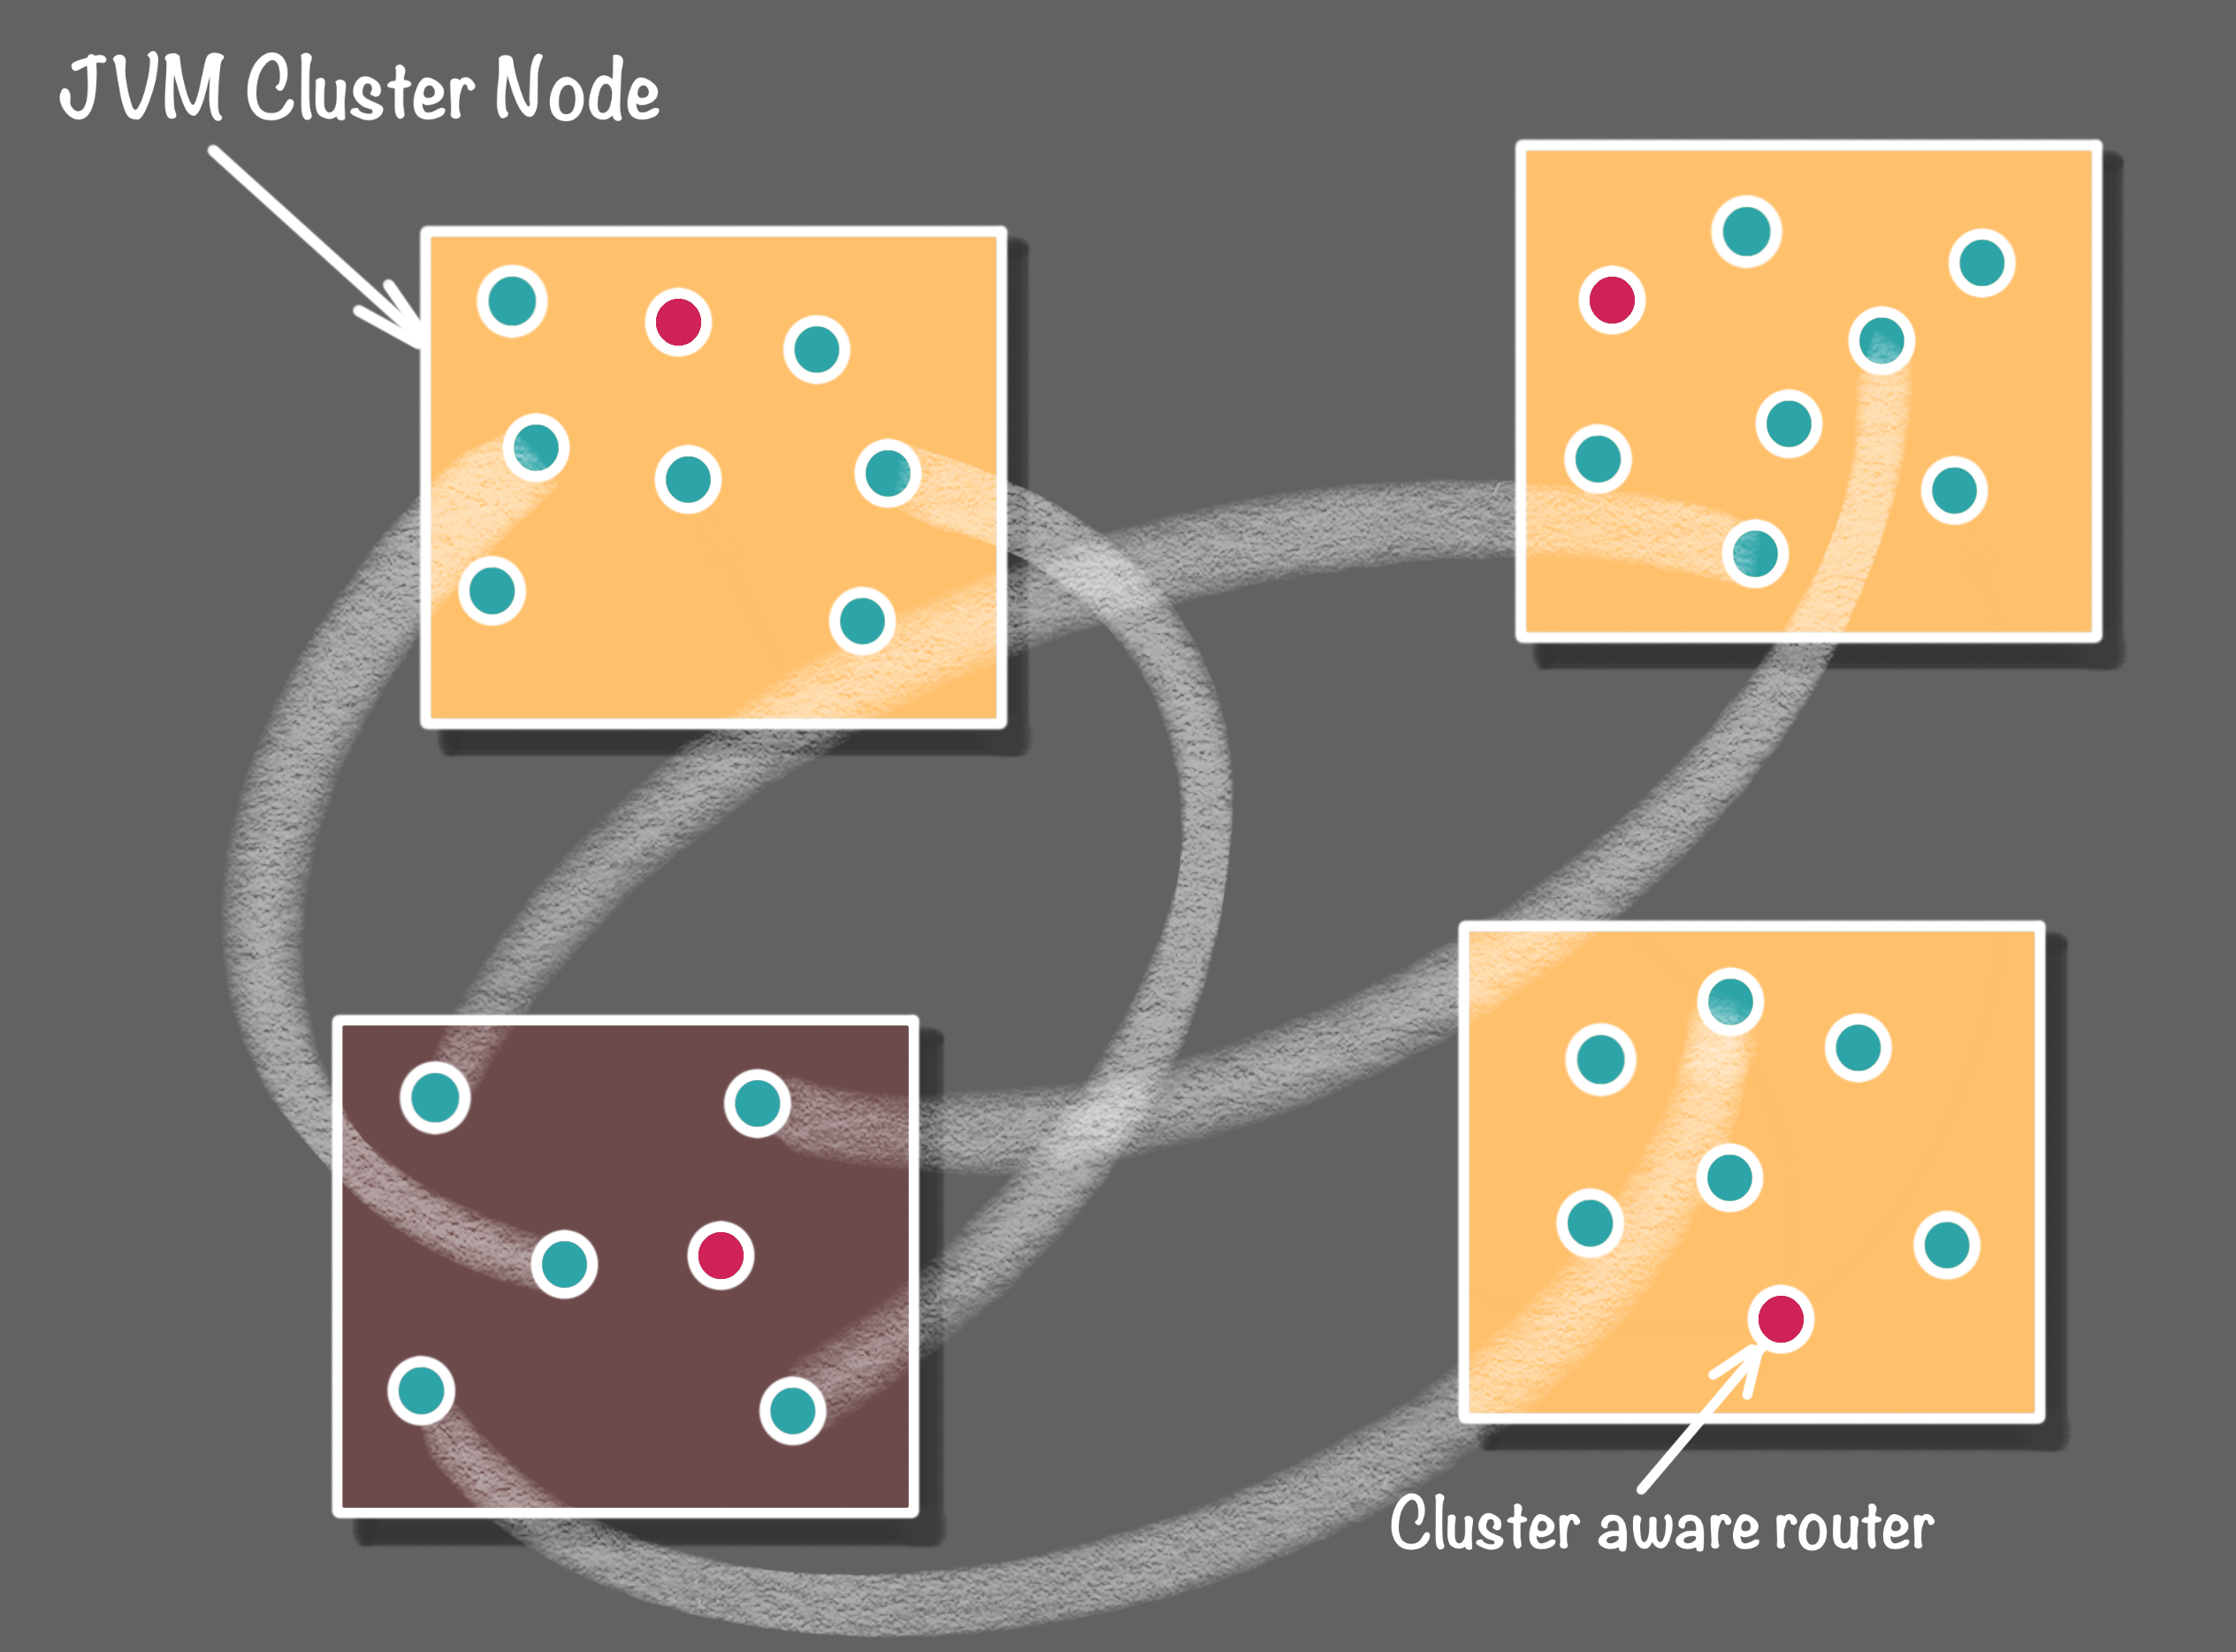 node leaving the cluster